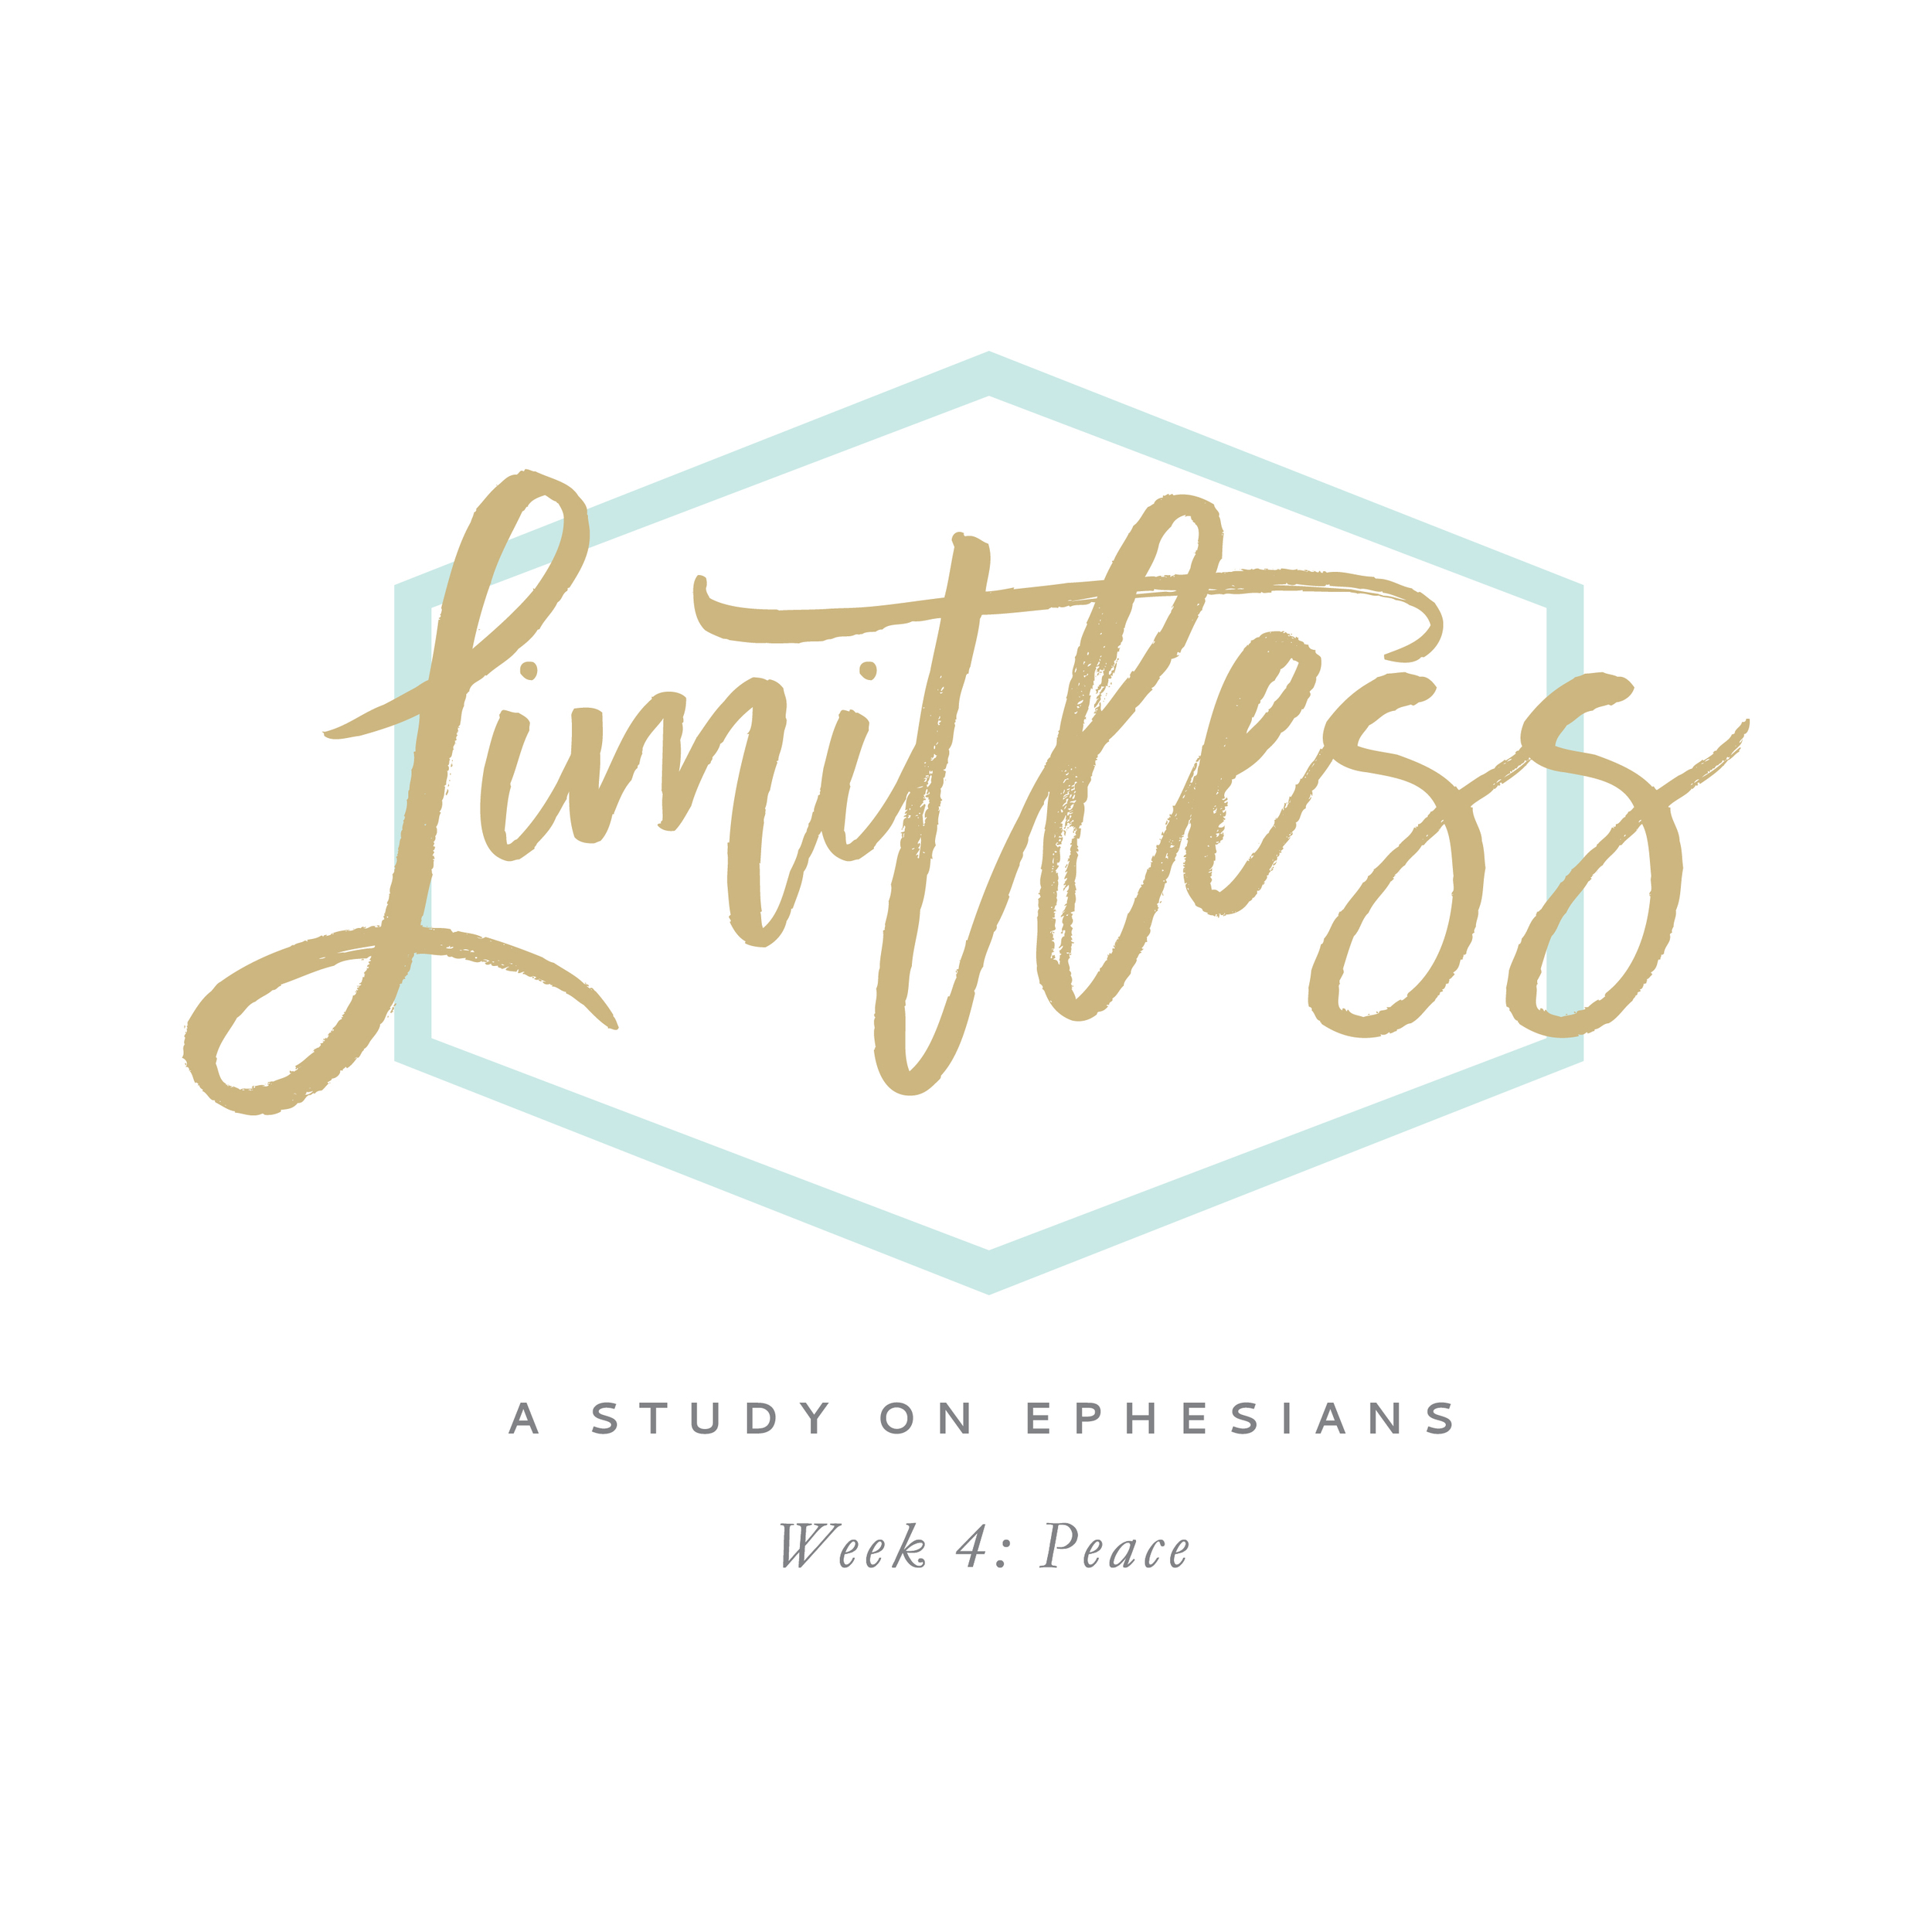 Limitless: A Study on Ephesians by Leslie Ann Jones. This podcast covers week 4 of material, found on page 18 of the workbook.